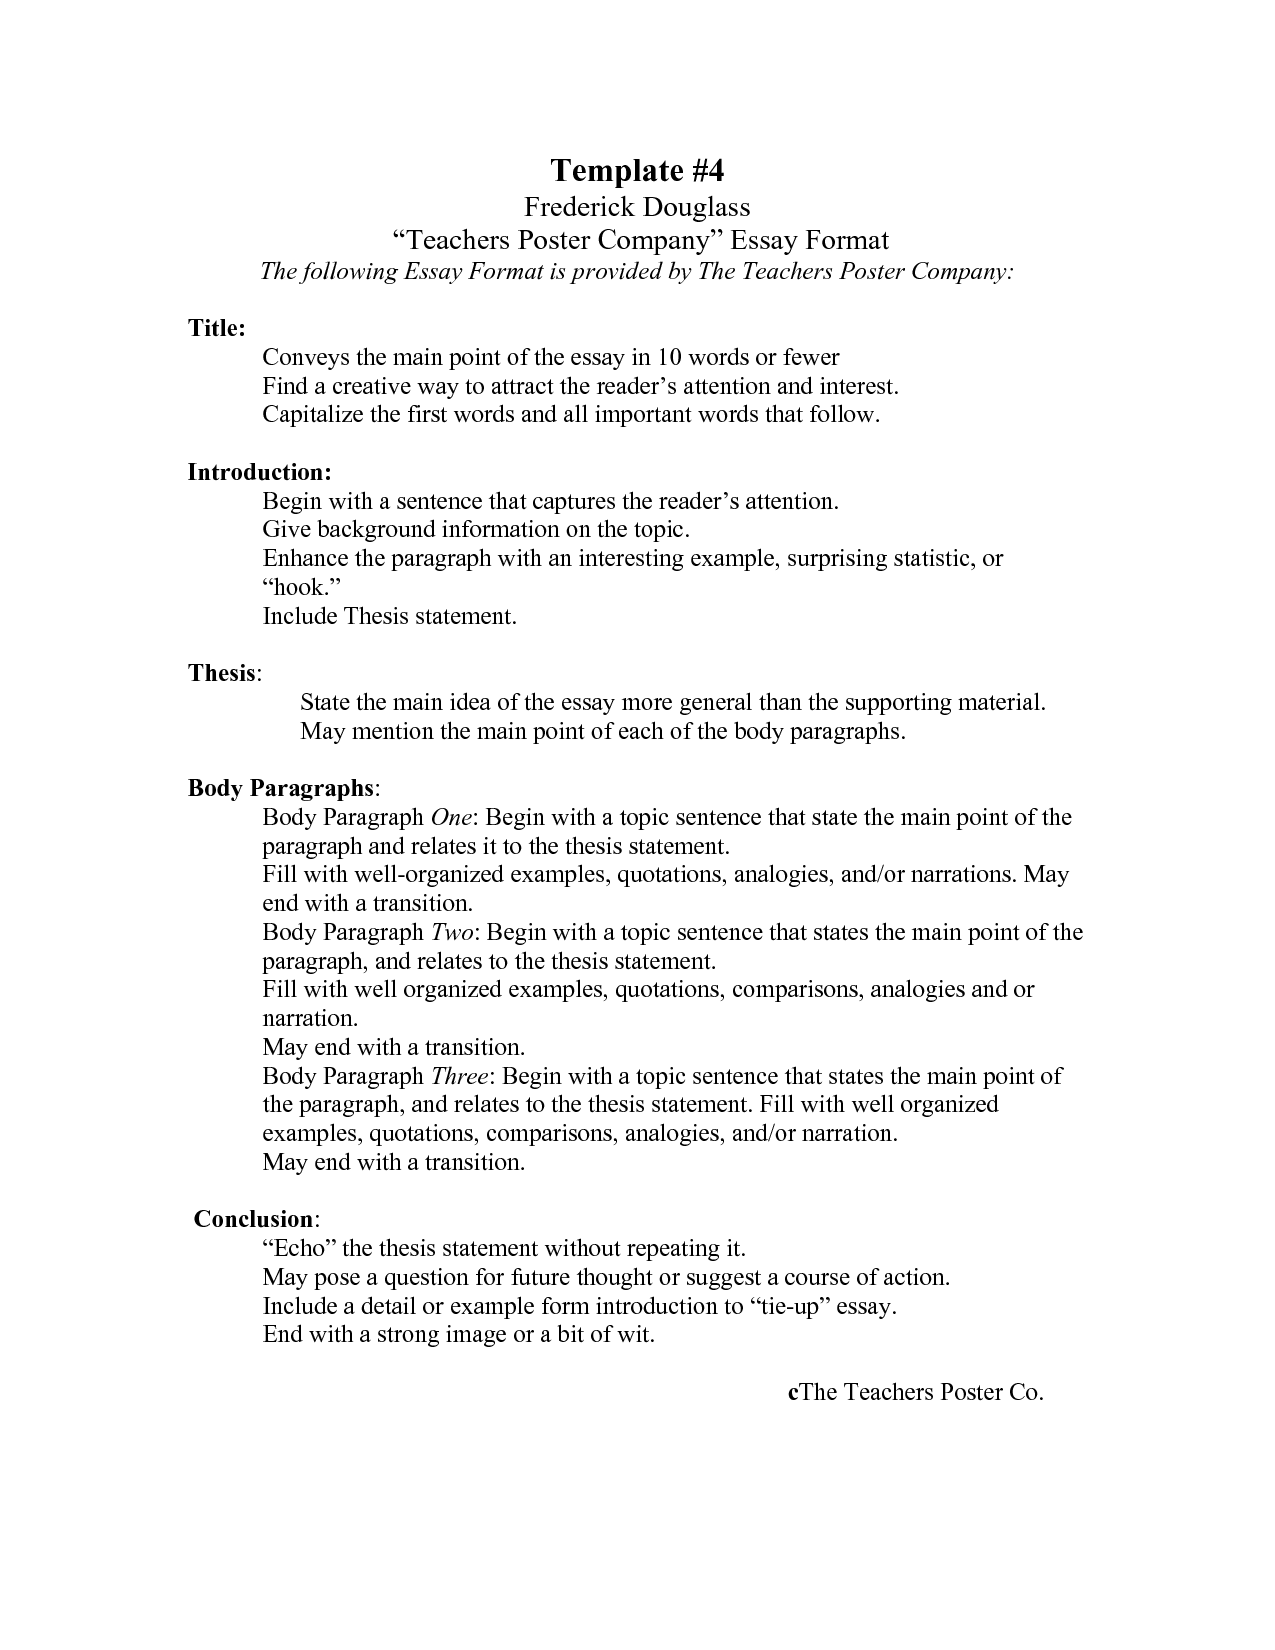 Proper outline for a cover letter